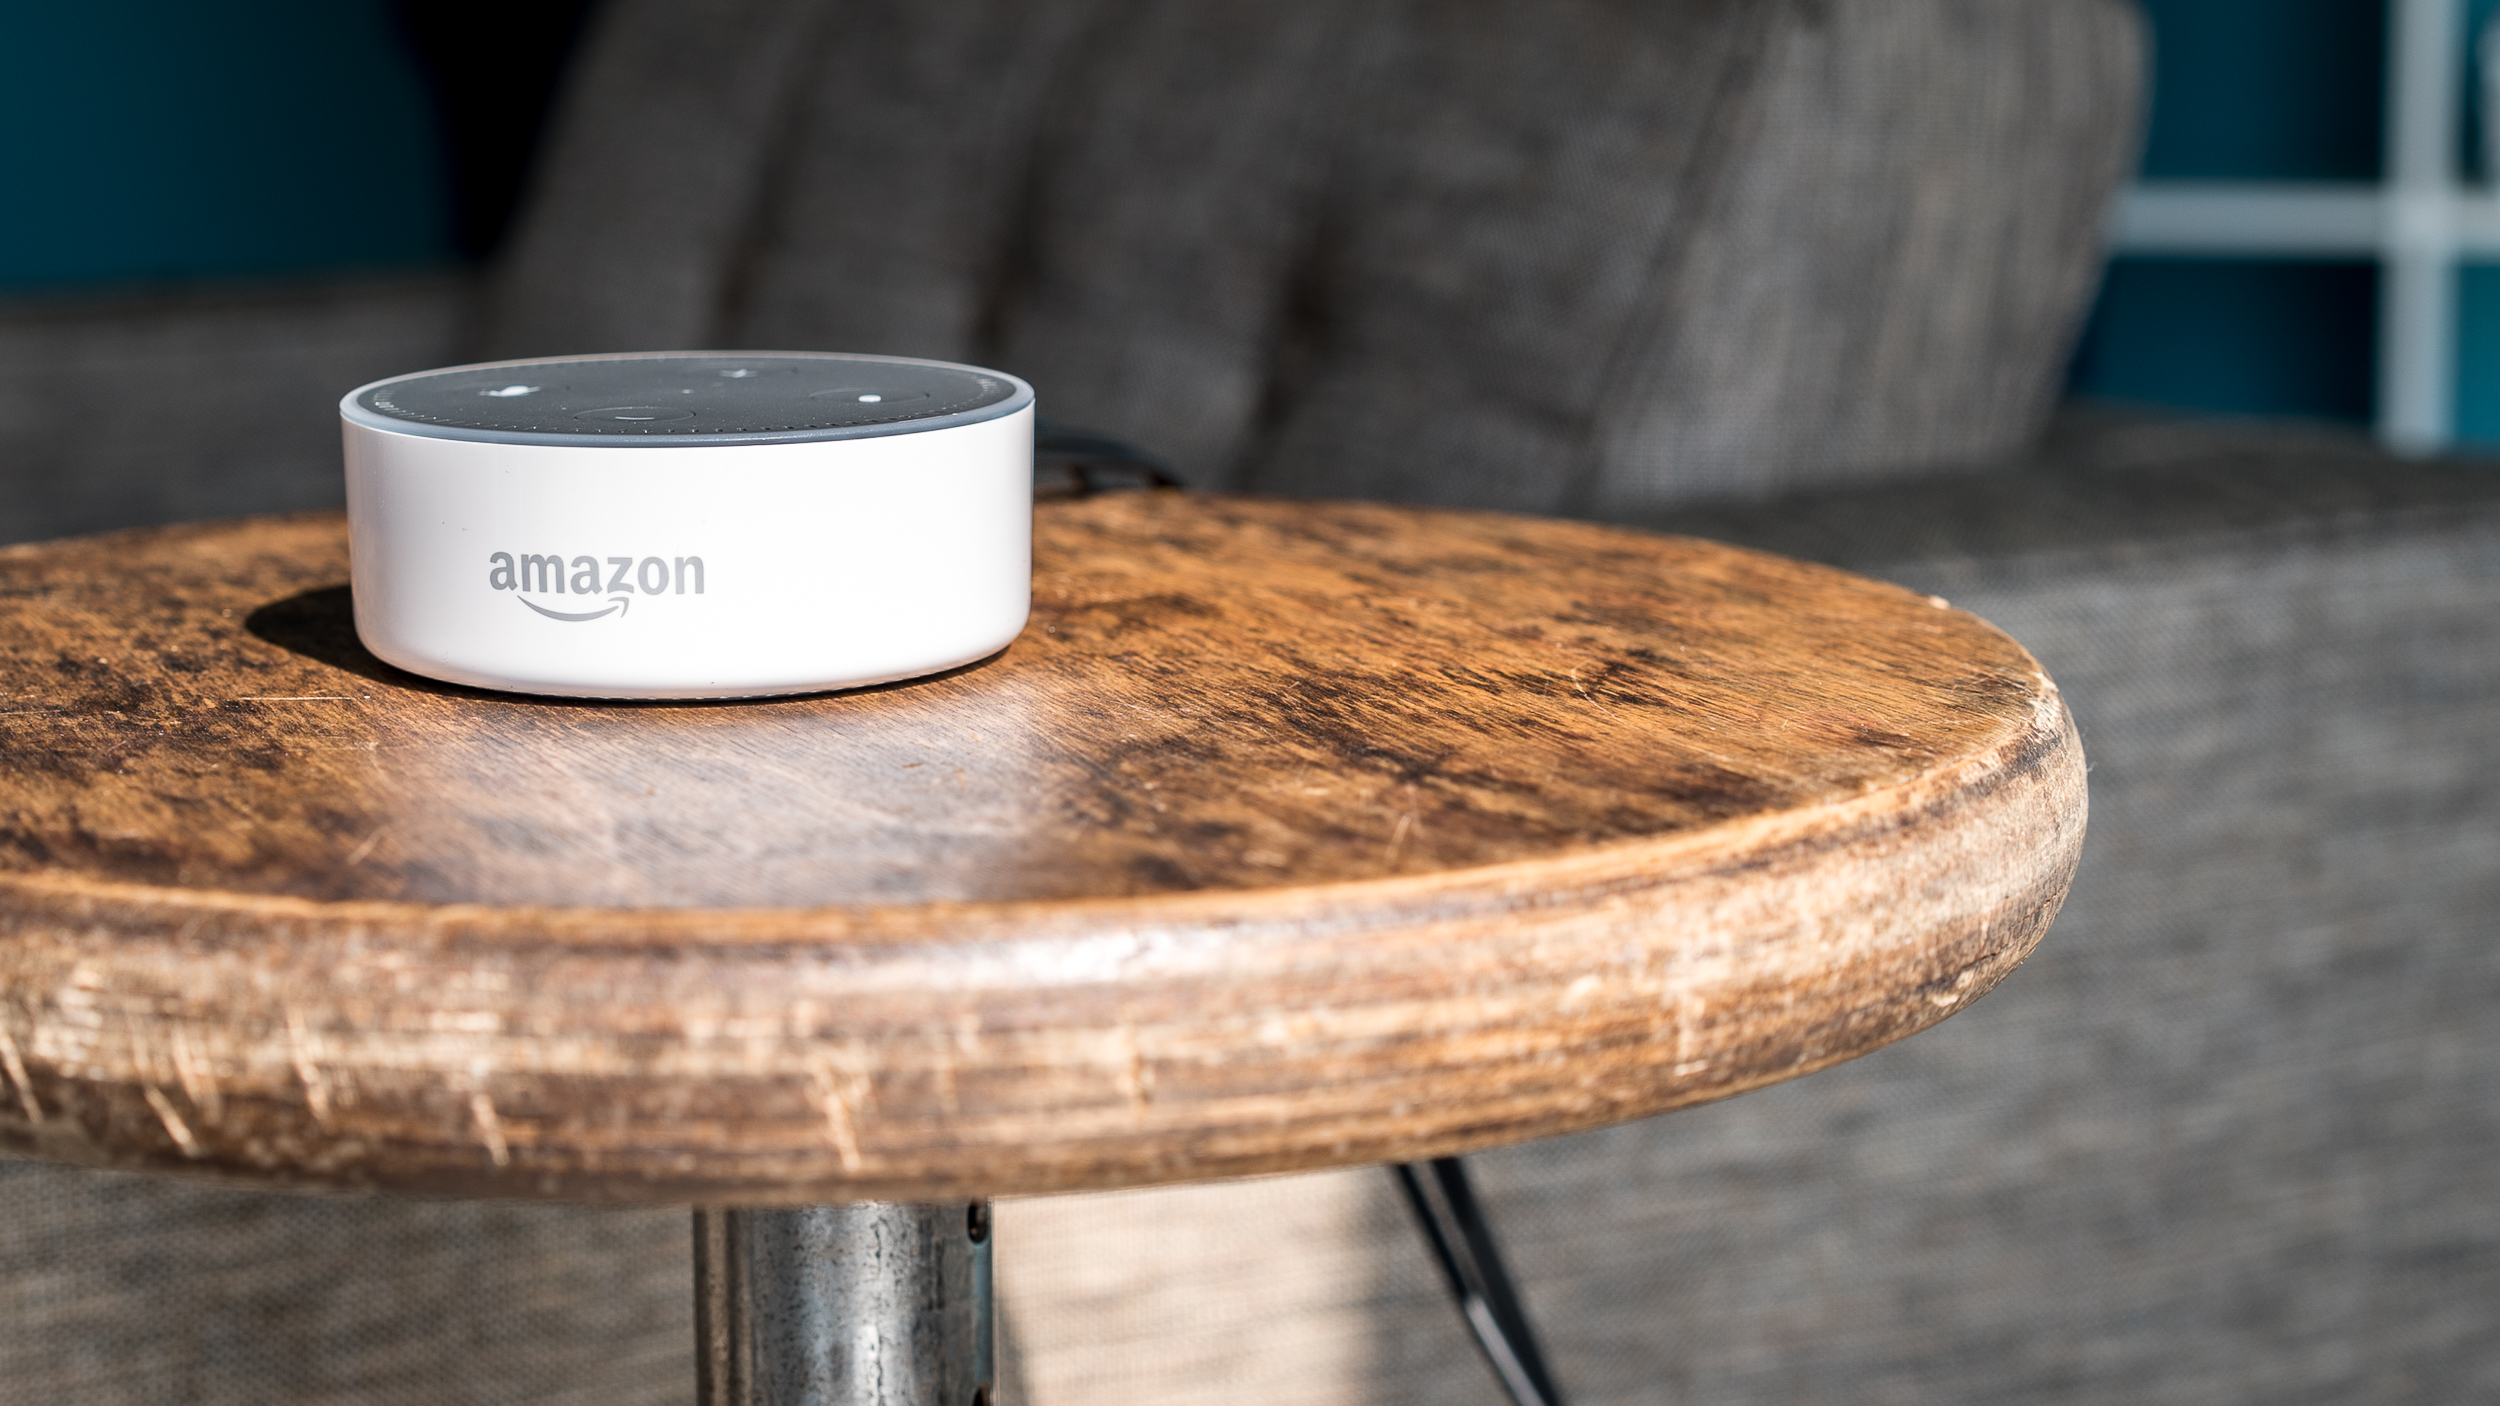 The Amazon Echo Dot in its new fetching white guise.